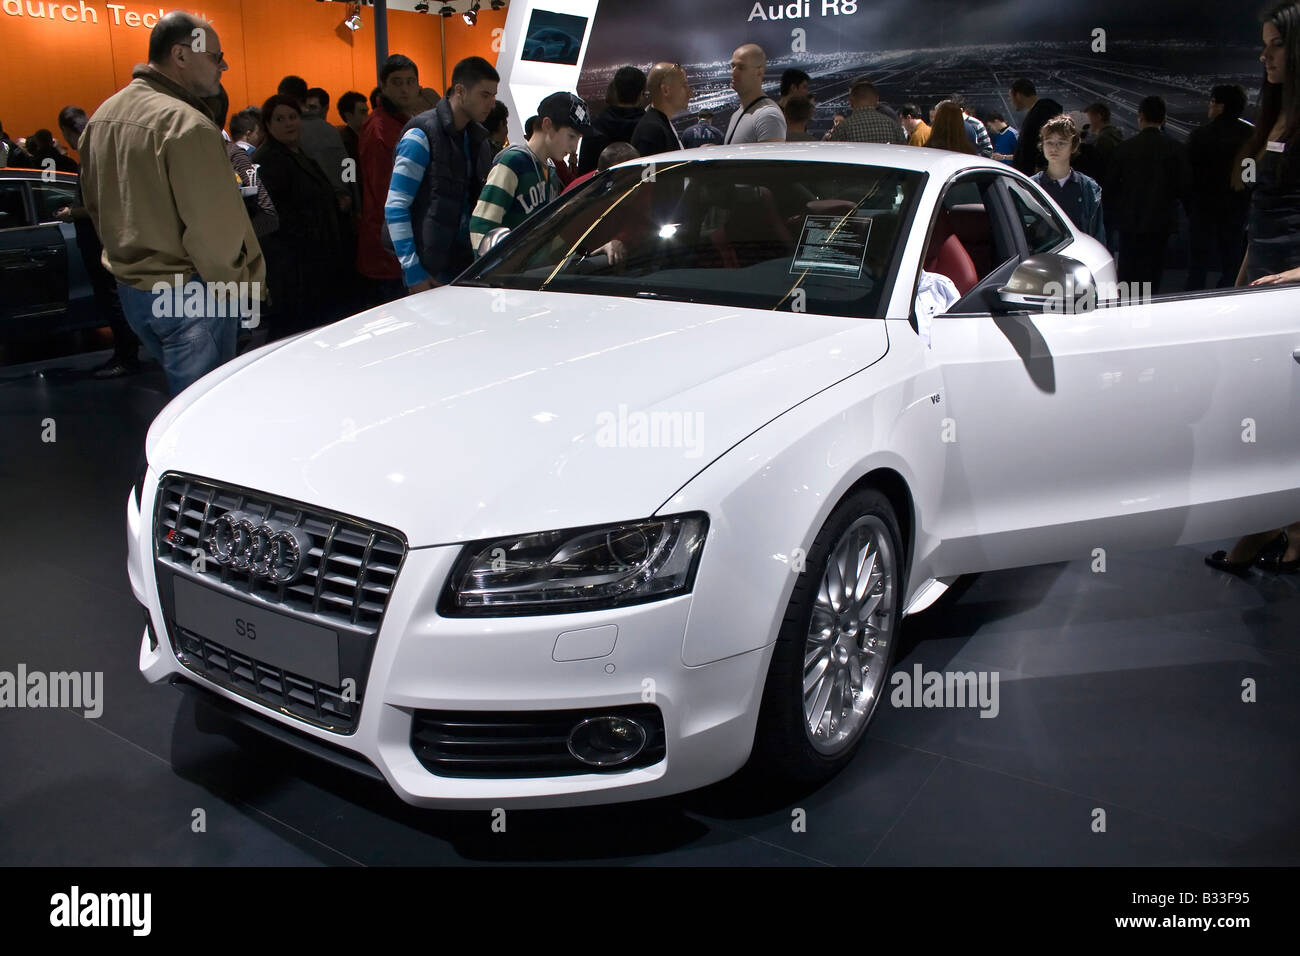 Audi S5 at Zagreb Auto Show in Croatia from 28.3. 2008. - 06. 04. 2008. - Stock Image